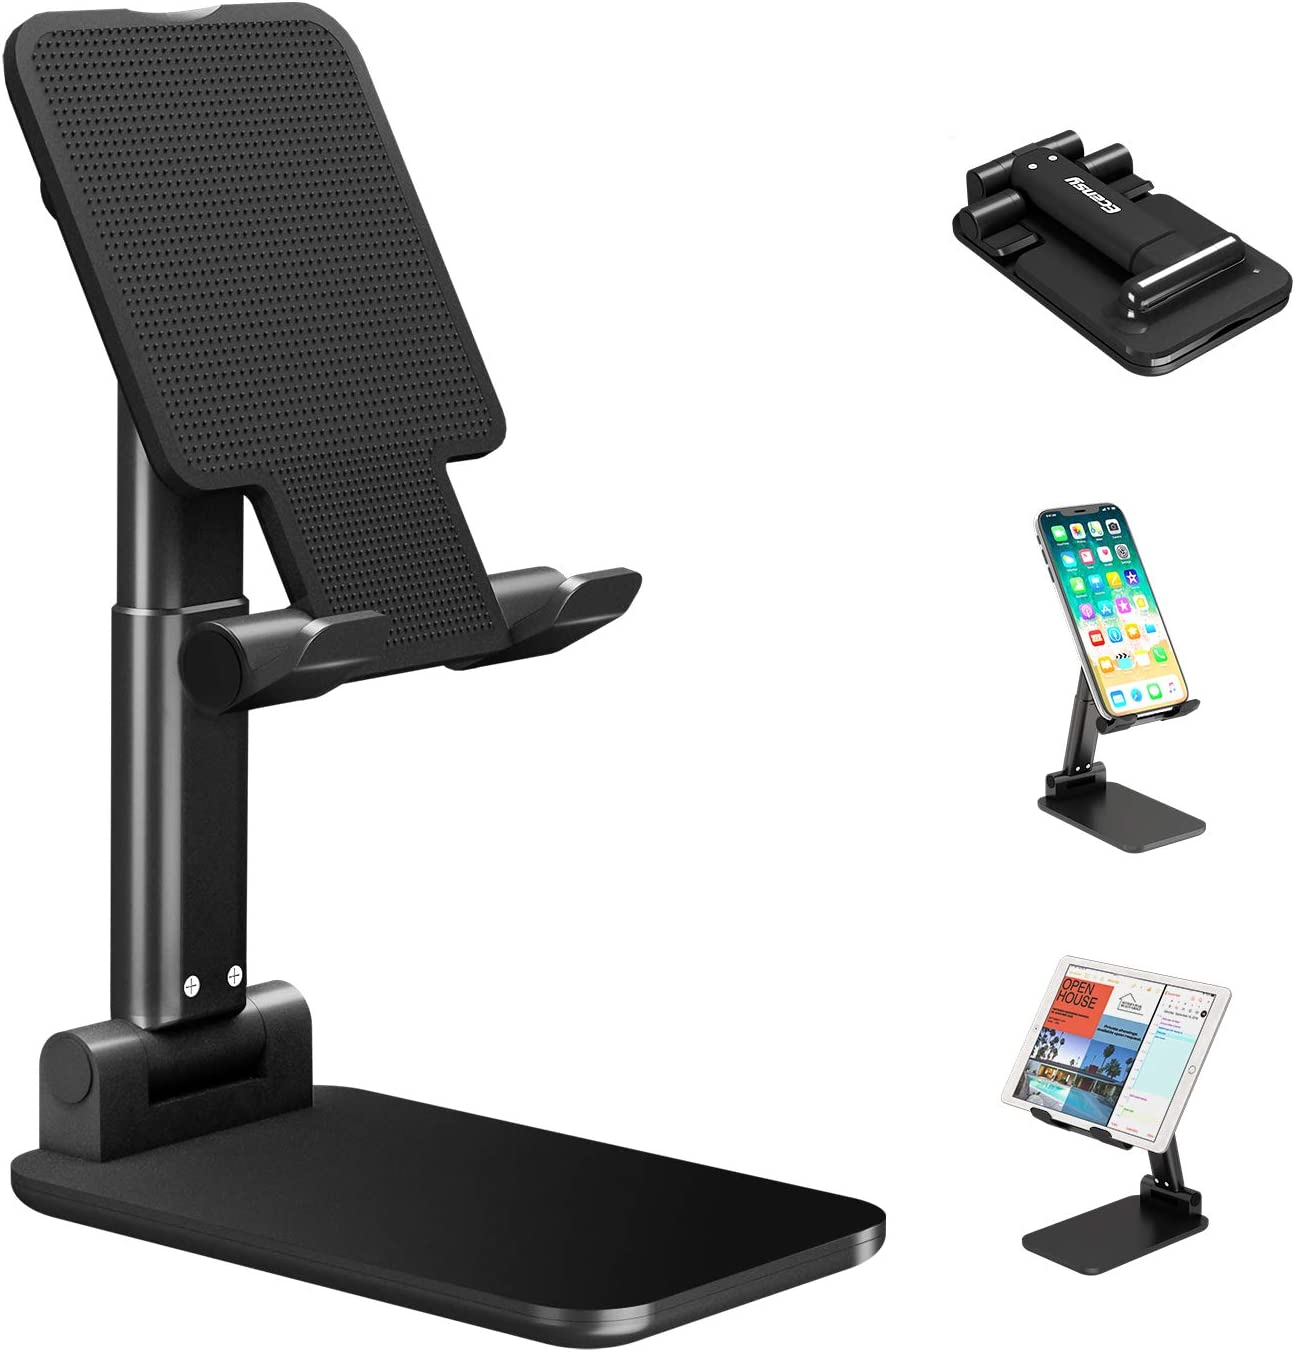 Foldable Mobile Phone Stand Rechargeable Universal Tablet Stand Compatible with Mobile Phone//iPad//Tablet Black for Rechargeable Adjustable Desktop Phone Stand with Adjustable Angle and Height